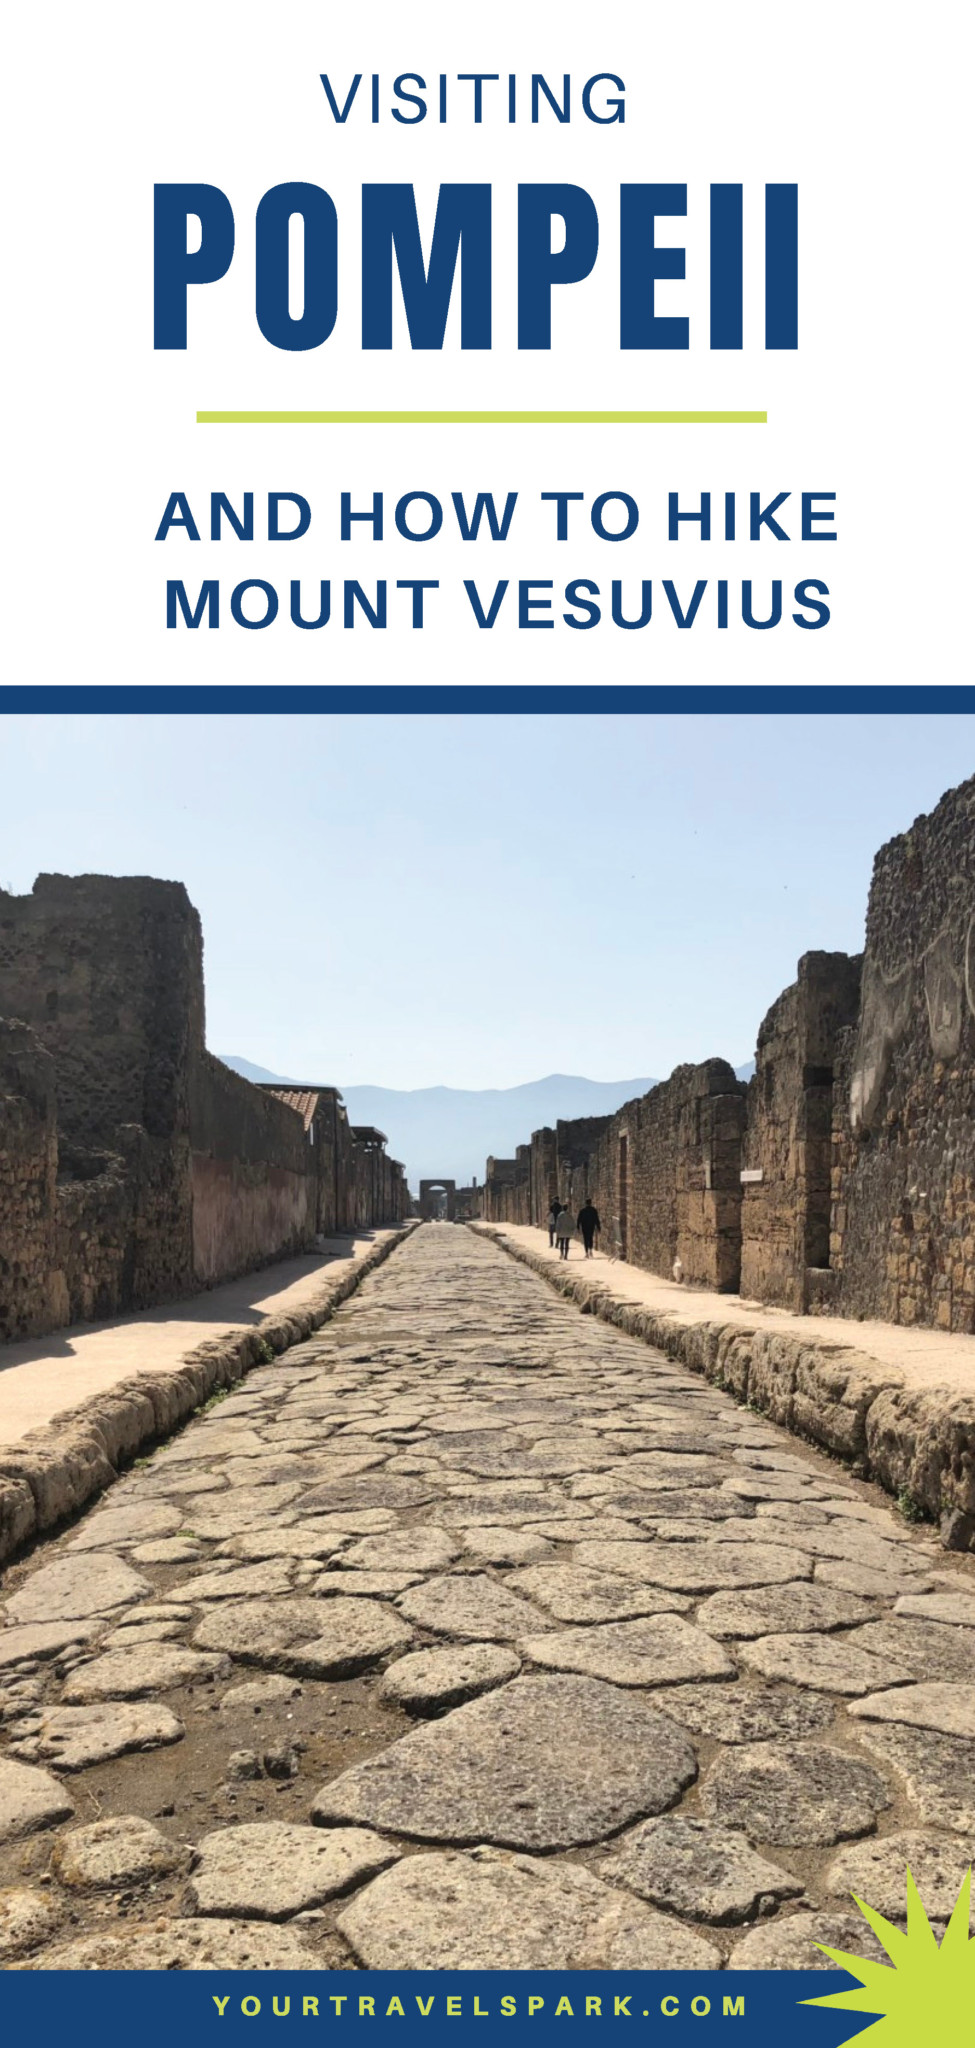 How to visit Ancient Pompeii and hike Mount Vesuvius in Italy. #pompeii #ancientpompeii #pompeiiitaly #italy #italia #pompeiiitalia #mtvesuvius #mountvesuvius #vesuvius #volcano #volcanoes #volcanos #mountvesuvio #mtvesuvio #vesuvio